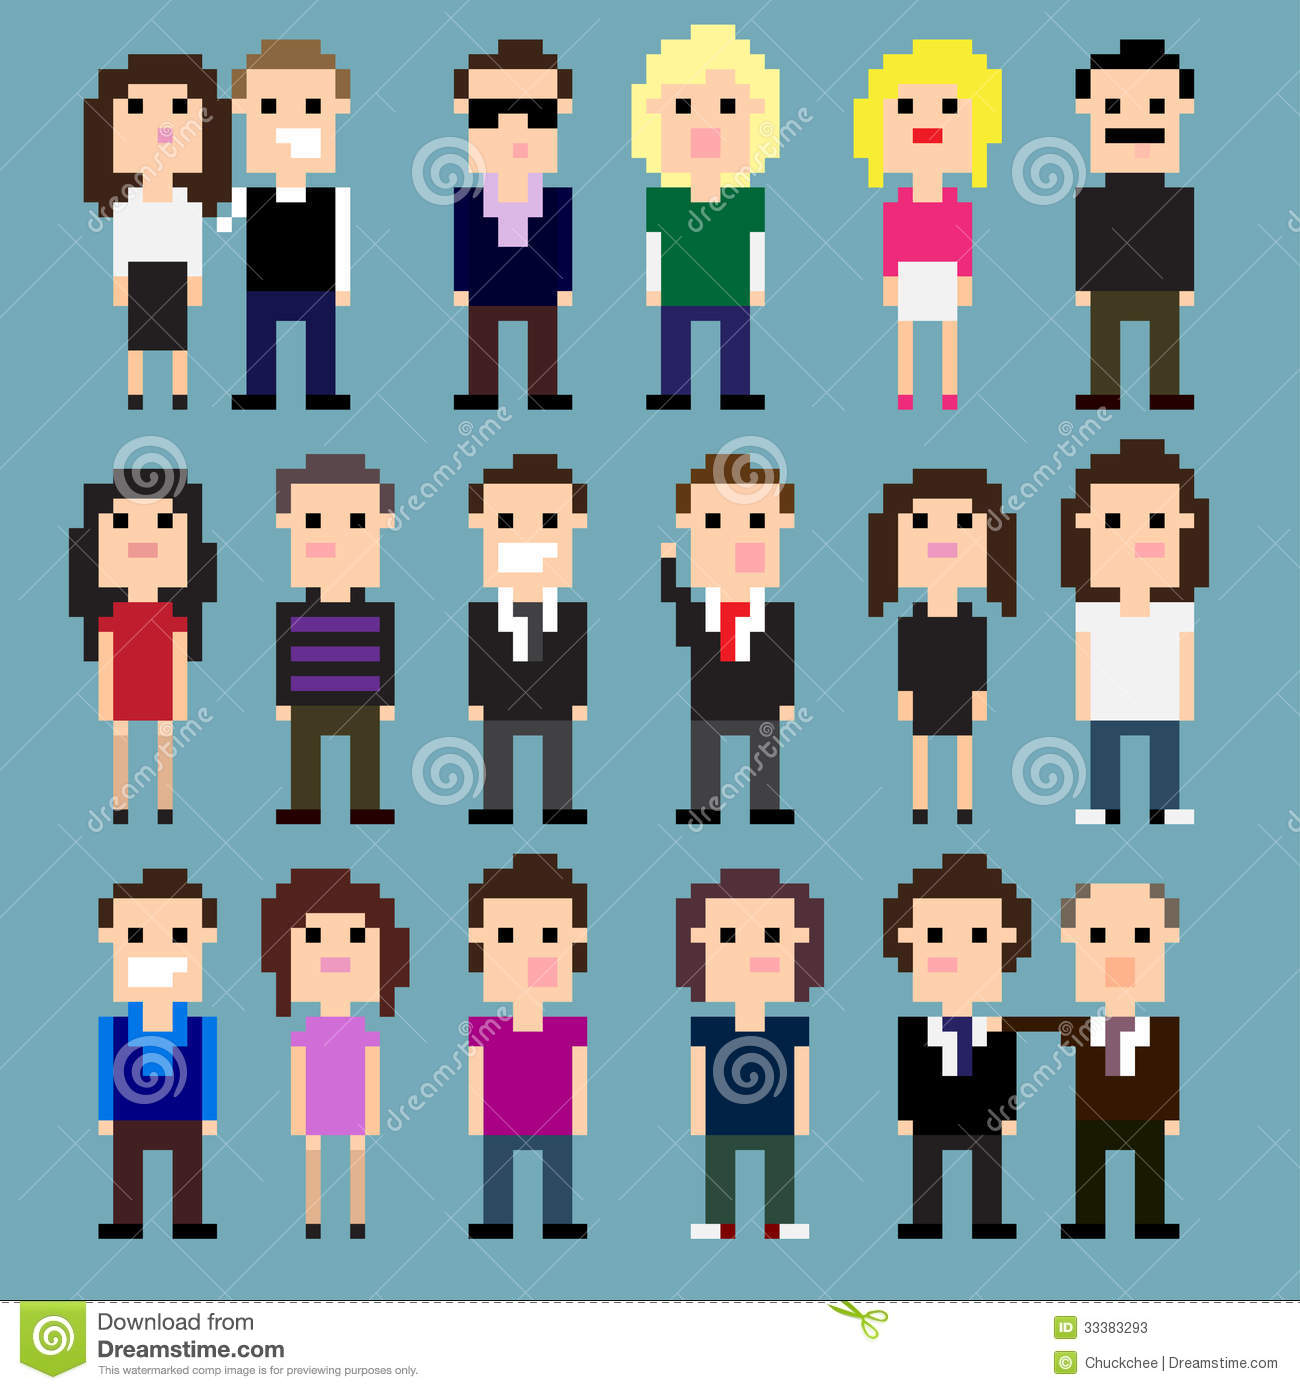 Pixel People stock vector. Illustration of business, community - 33383293